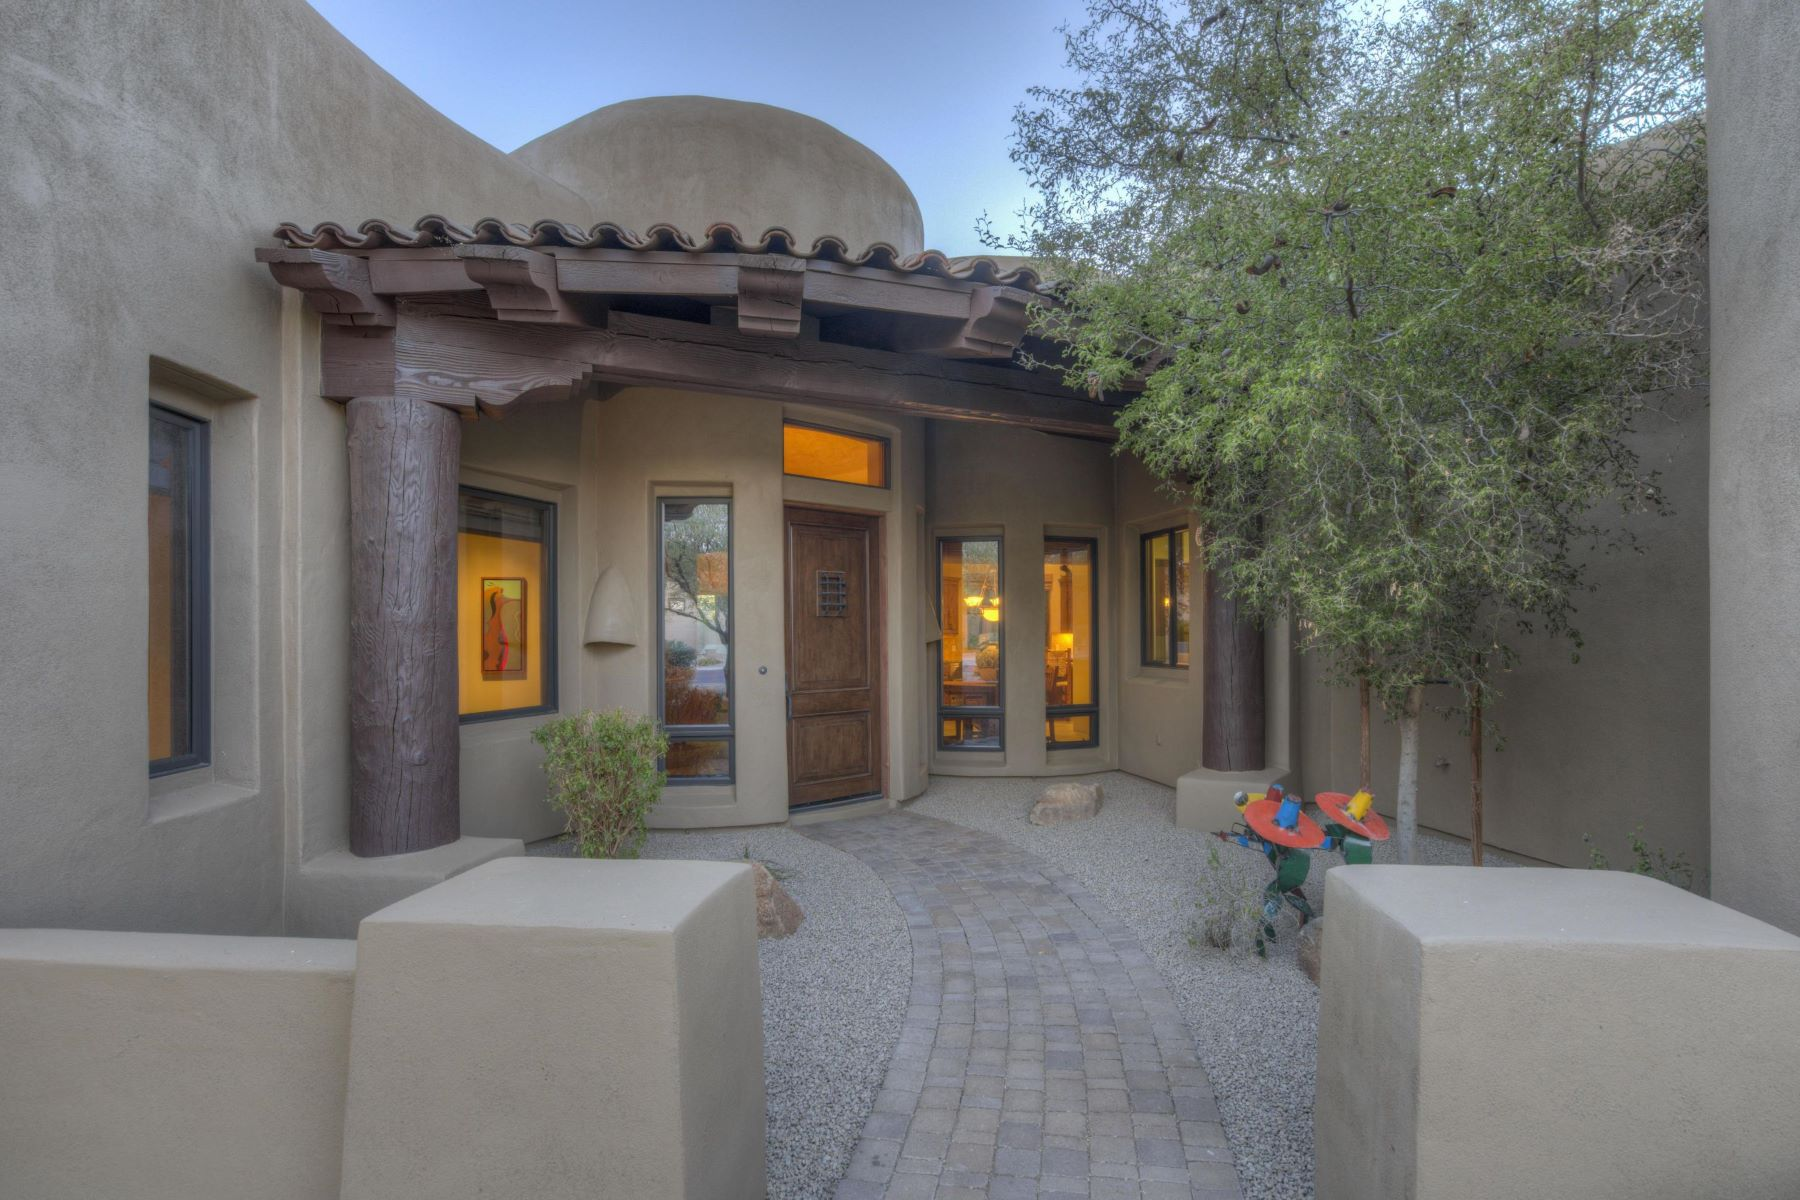 Single Family Home for Sale at Gorgeous home nestled on the 6th Fairway of the Boulders South Golf Course 7373 E Clubhouse Dr #8, Scottsdale, Arizona, 85266 United States